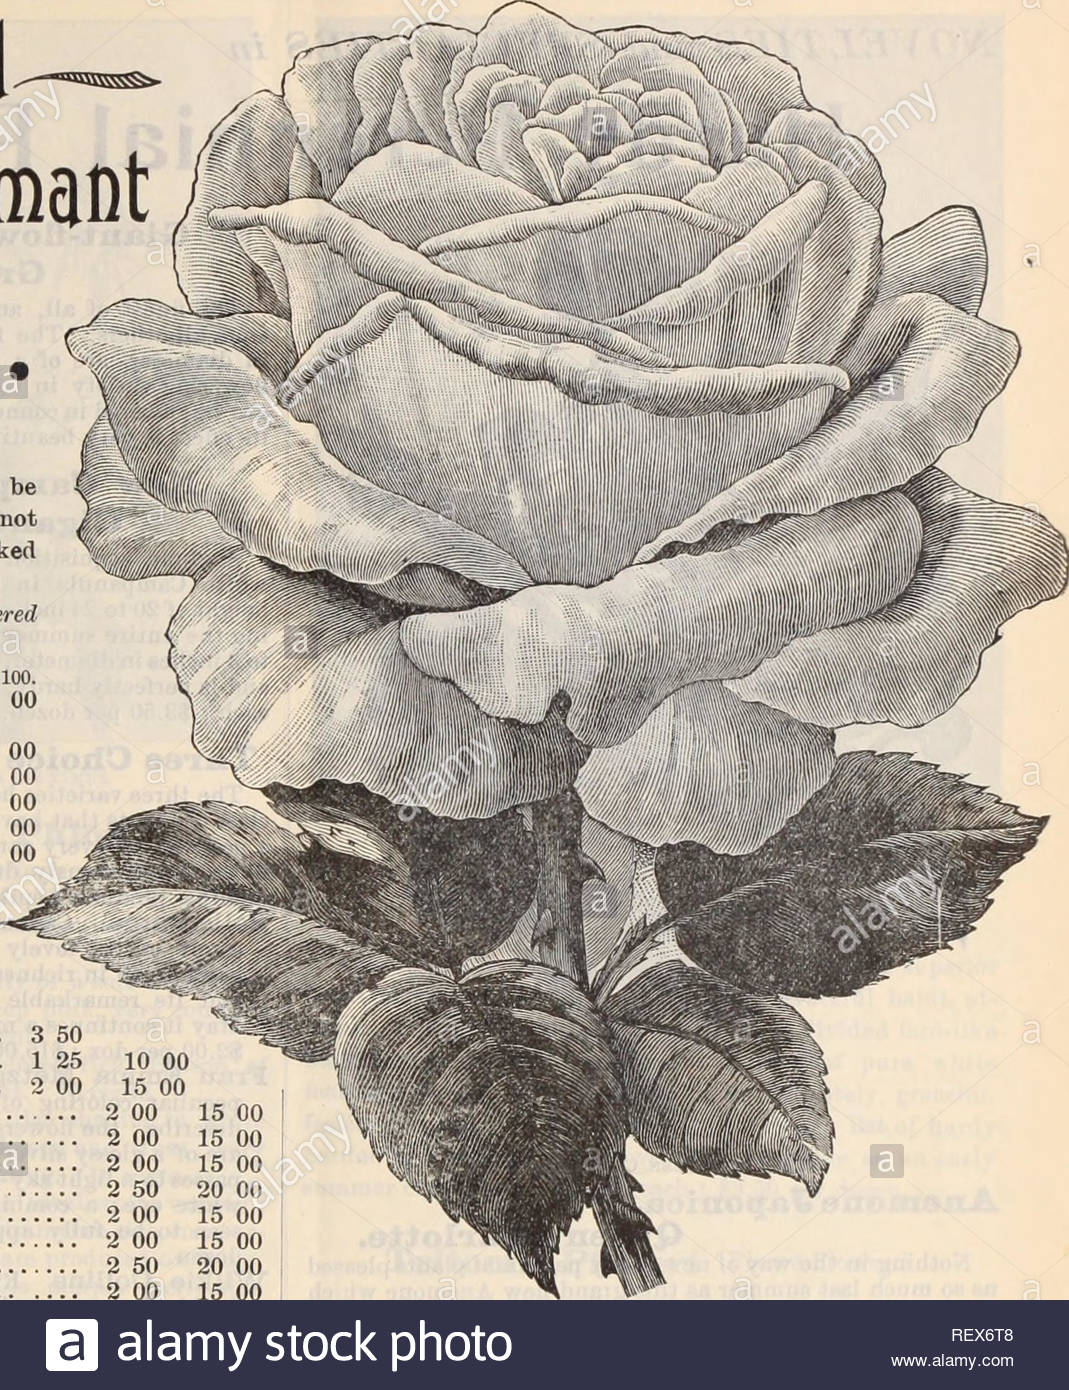 dreers wholesale price list henry a dreer nursery catalogue wholesale price list 3t tuio yeaf old dormant per 100 20 00 15 00 15 go 15 00 15 00 15 00 12 00 10 00 12 00 12 00 20 00 roses varieties marked with an can be supplied in own root plants those not marked are dwarf budded plants worked on manetti pricesnoted are only for orders delivered before april 1st per doz augustine guinoseaux 2 50 american beauty 3 00 alfred colomb 2 00 anna de sbach 2 00 boule de neige 2 00 baroness rothschild 2 00 baron de bonstettin 2 00 blanche moreau 1 50 baltimo REX6T8